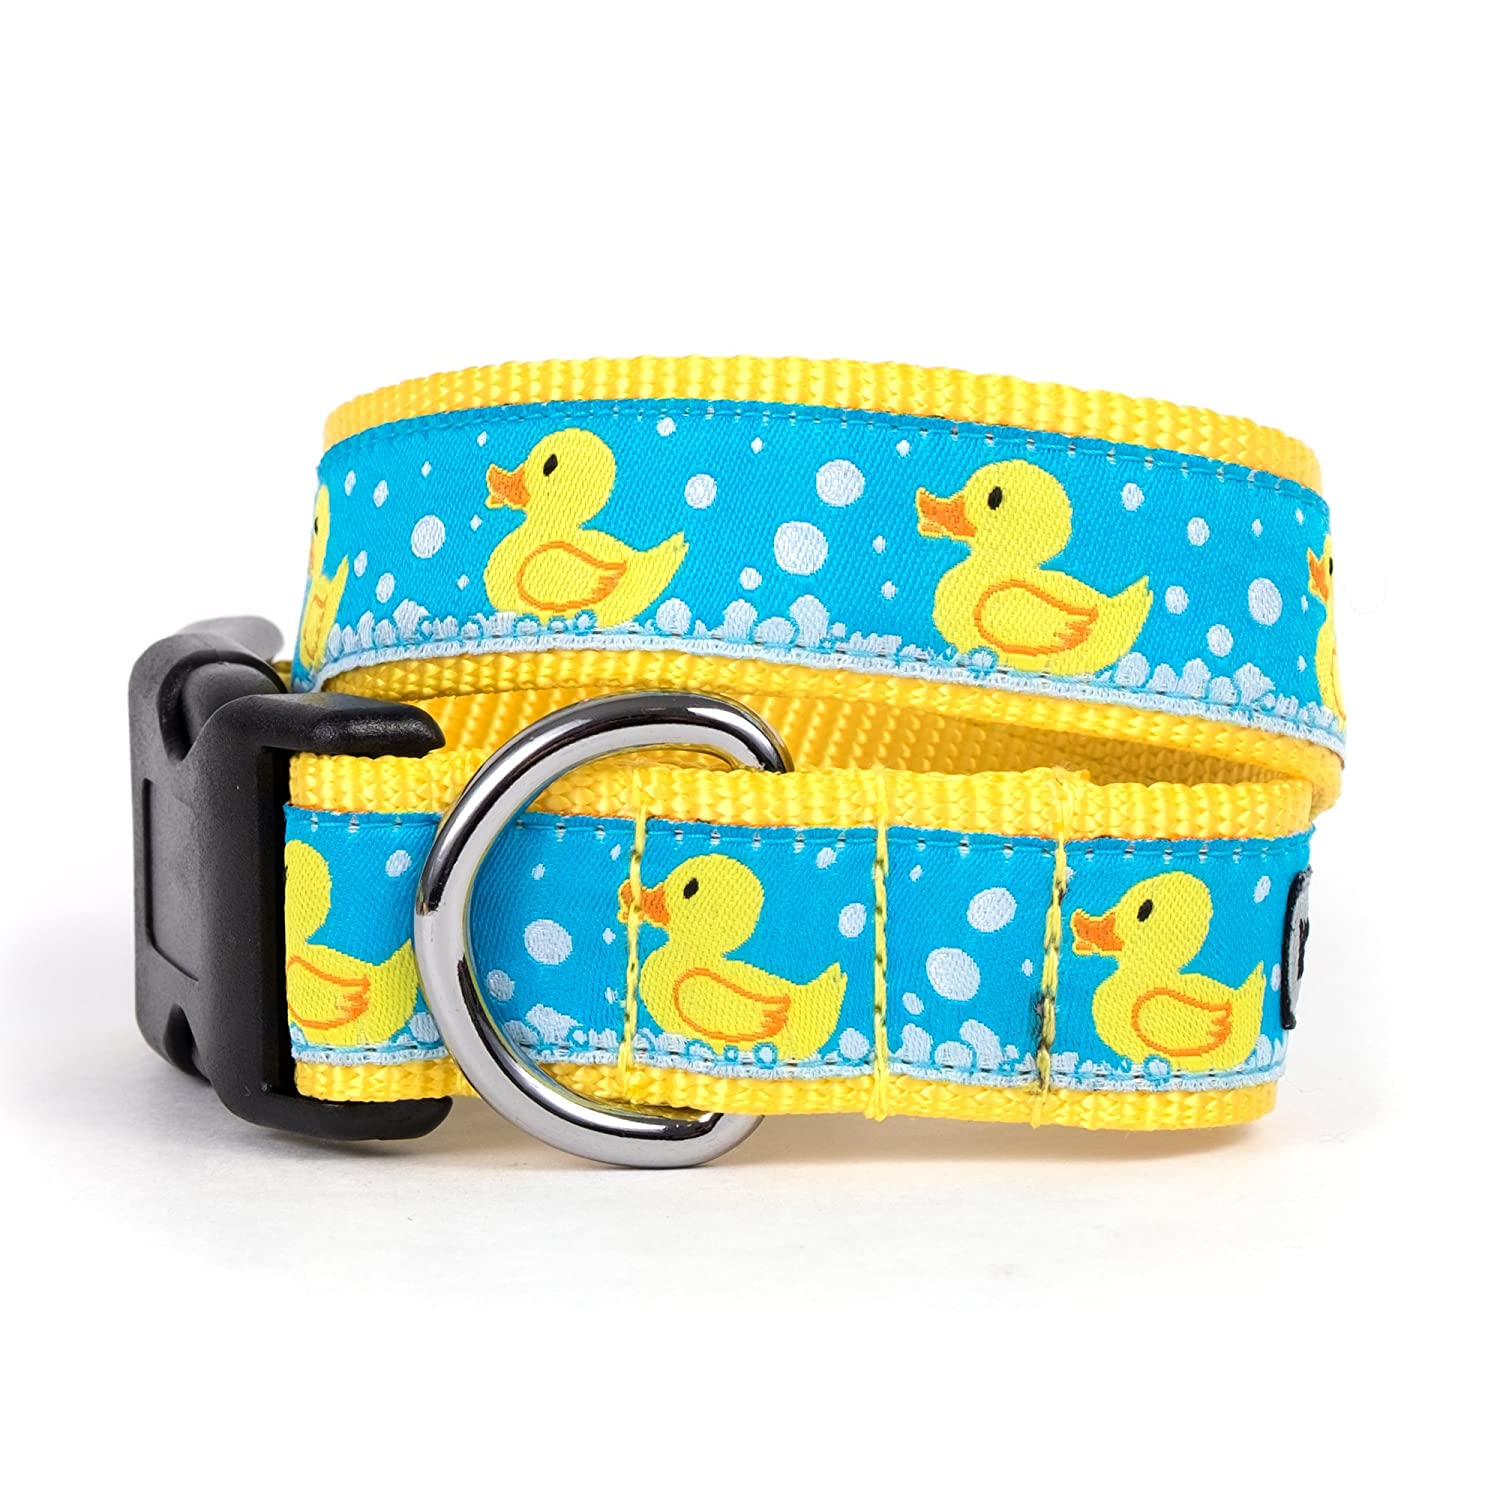 bluee, X-Small The Worthy Dog Yellow Rubber Duck Ducky Bubble Bath Adjustable Designer Pet Dog Collar, bluee, X-Small